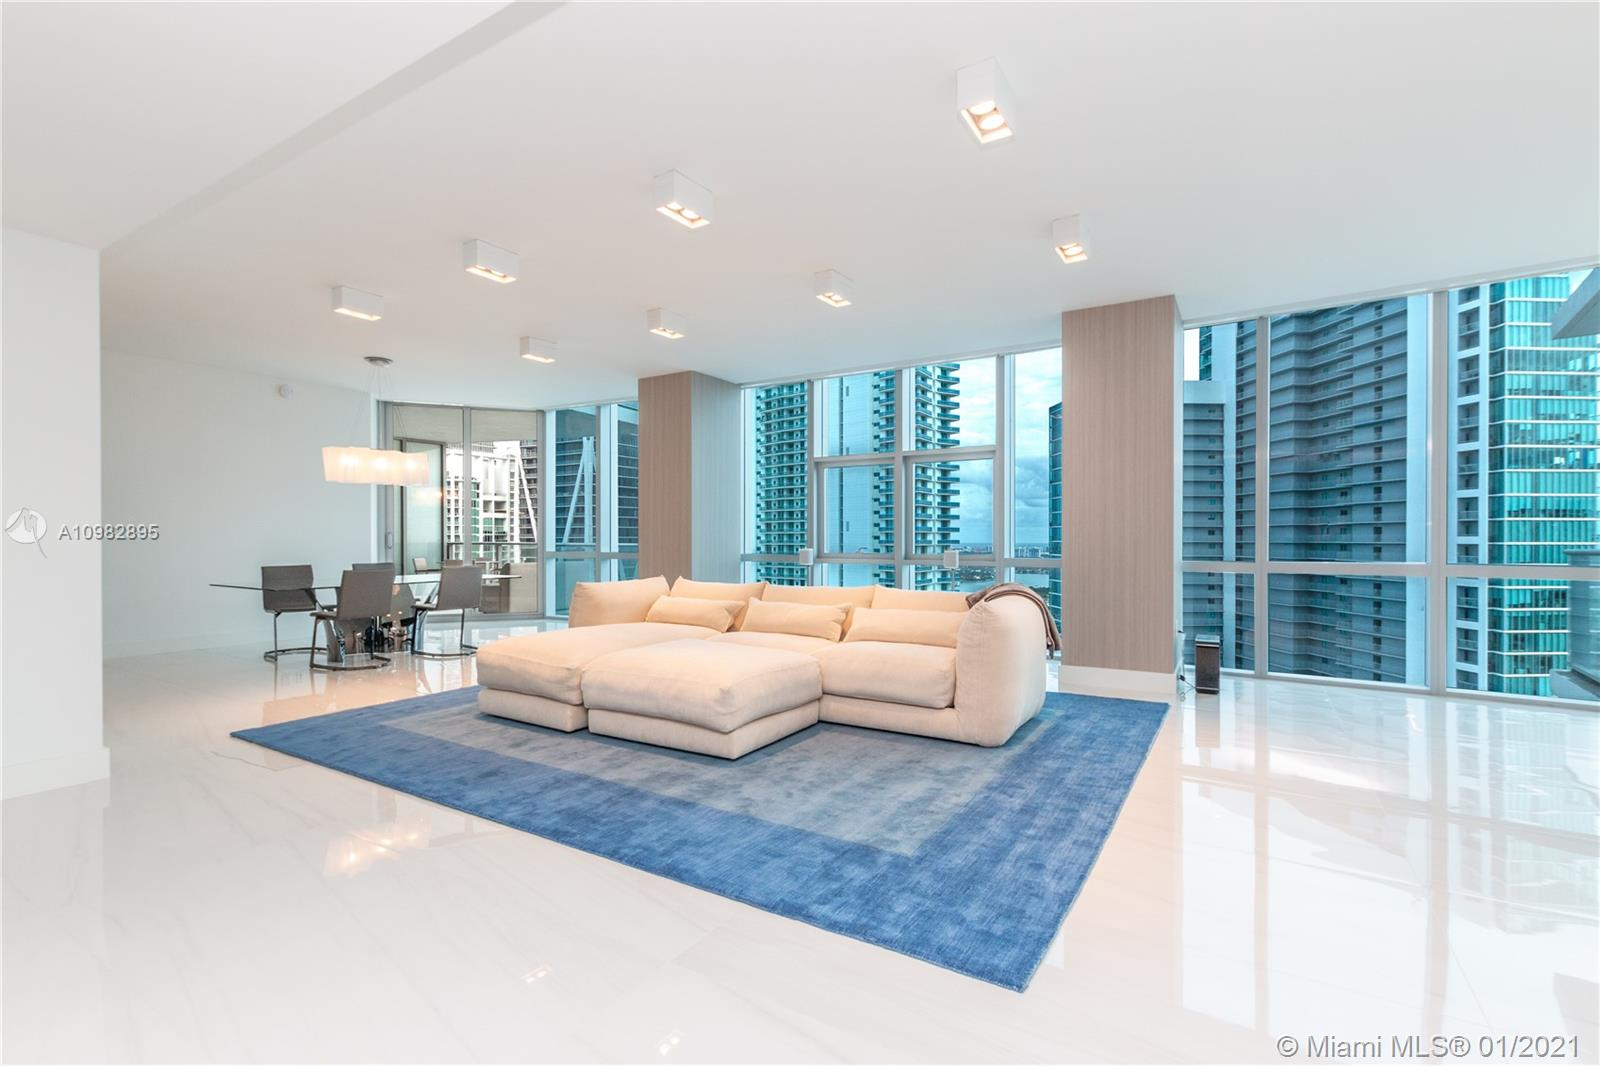 JUST REDUCED $300K! Unique and spacious combination residence on the upper floors with magnificent views of the bay, ocean and skyline. Professionally designed by Interiors by Steven G, this plush residence boasts nearly 3100sf of interior space plus 2 large terraces, double master bedroom, oversized den that easily converts to a third bedroom, leaving a generously sized den in addition. Design features include 31x70 Italian porcelain flooring, custom kitchen with Geoluxe tops, automated window shades with blackouts, custom built-in's, Polyform wardrobes, custom bar area with wine storage, contemporary light fixtures, custom millwork and more. Sonos audio and luxury furnishings can be included. 2 deeded/self-parking or valet spaces. Building features 3 swimming pools, tennis and soccer.